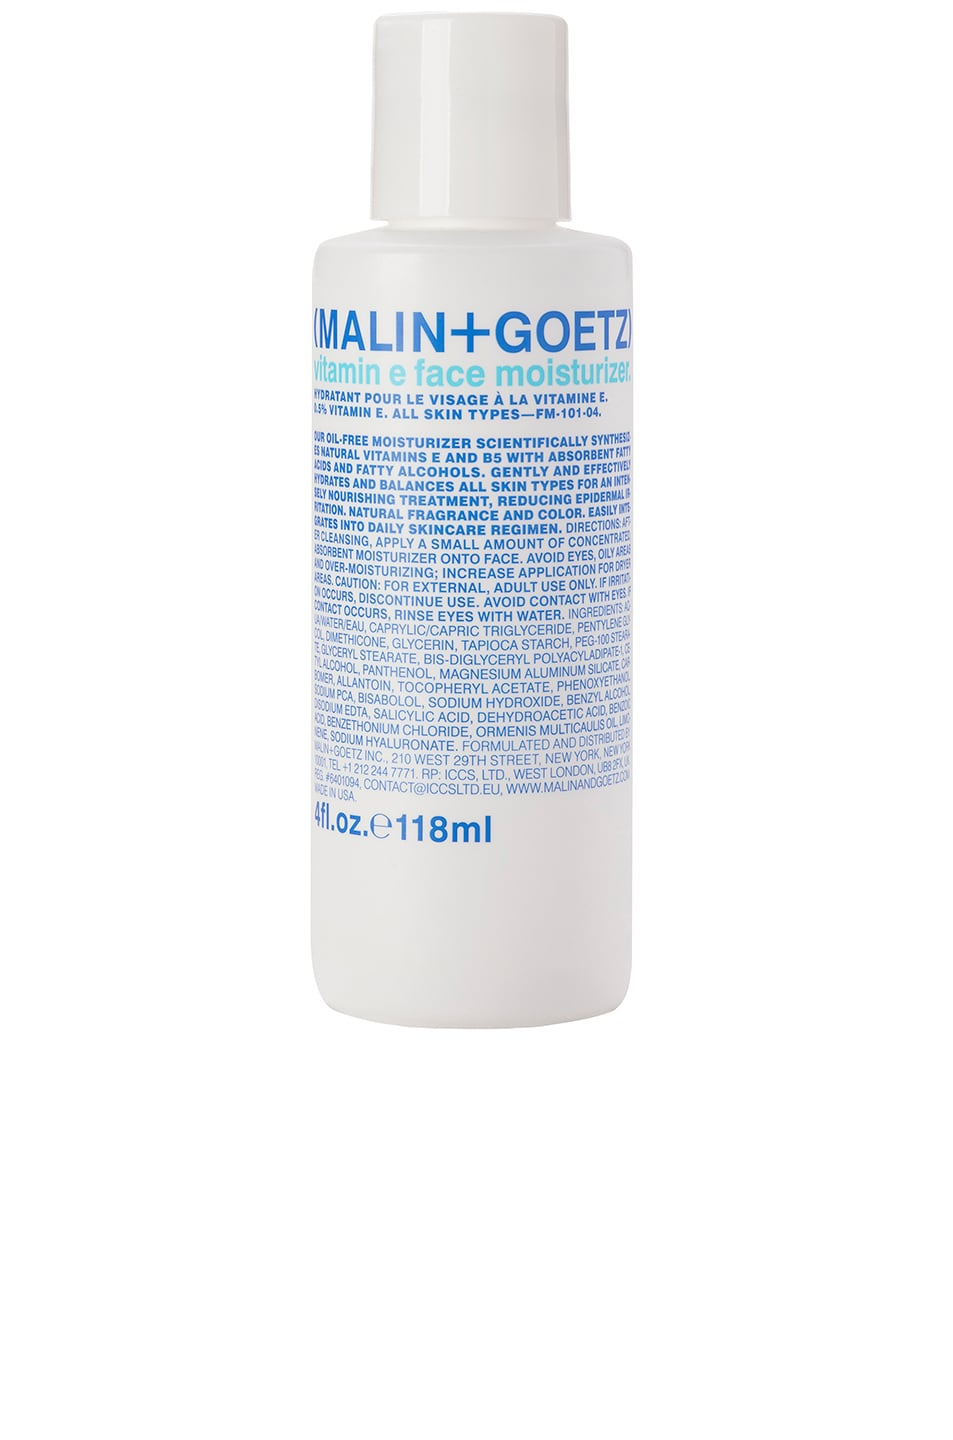 Image 1 of (MALIN+GOETZ) Vitamin E Face Moisturizer